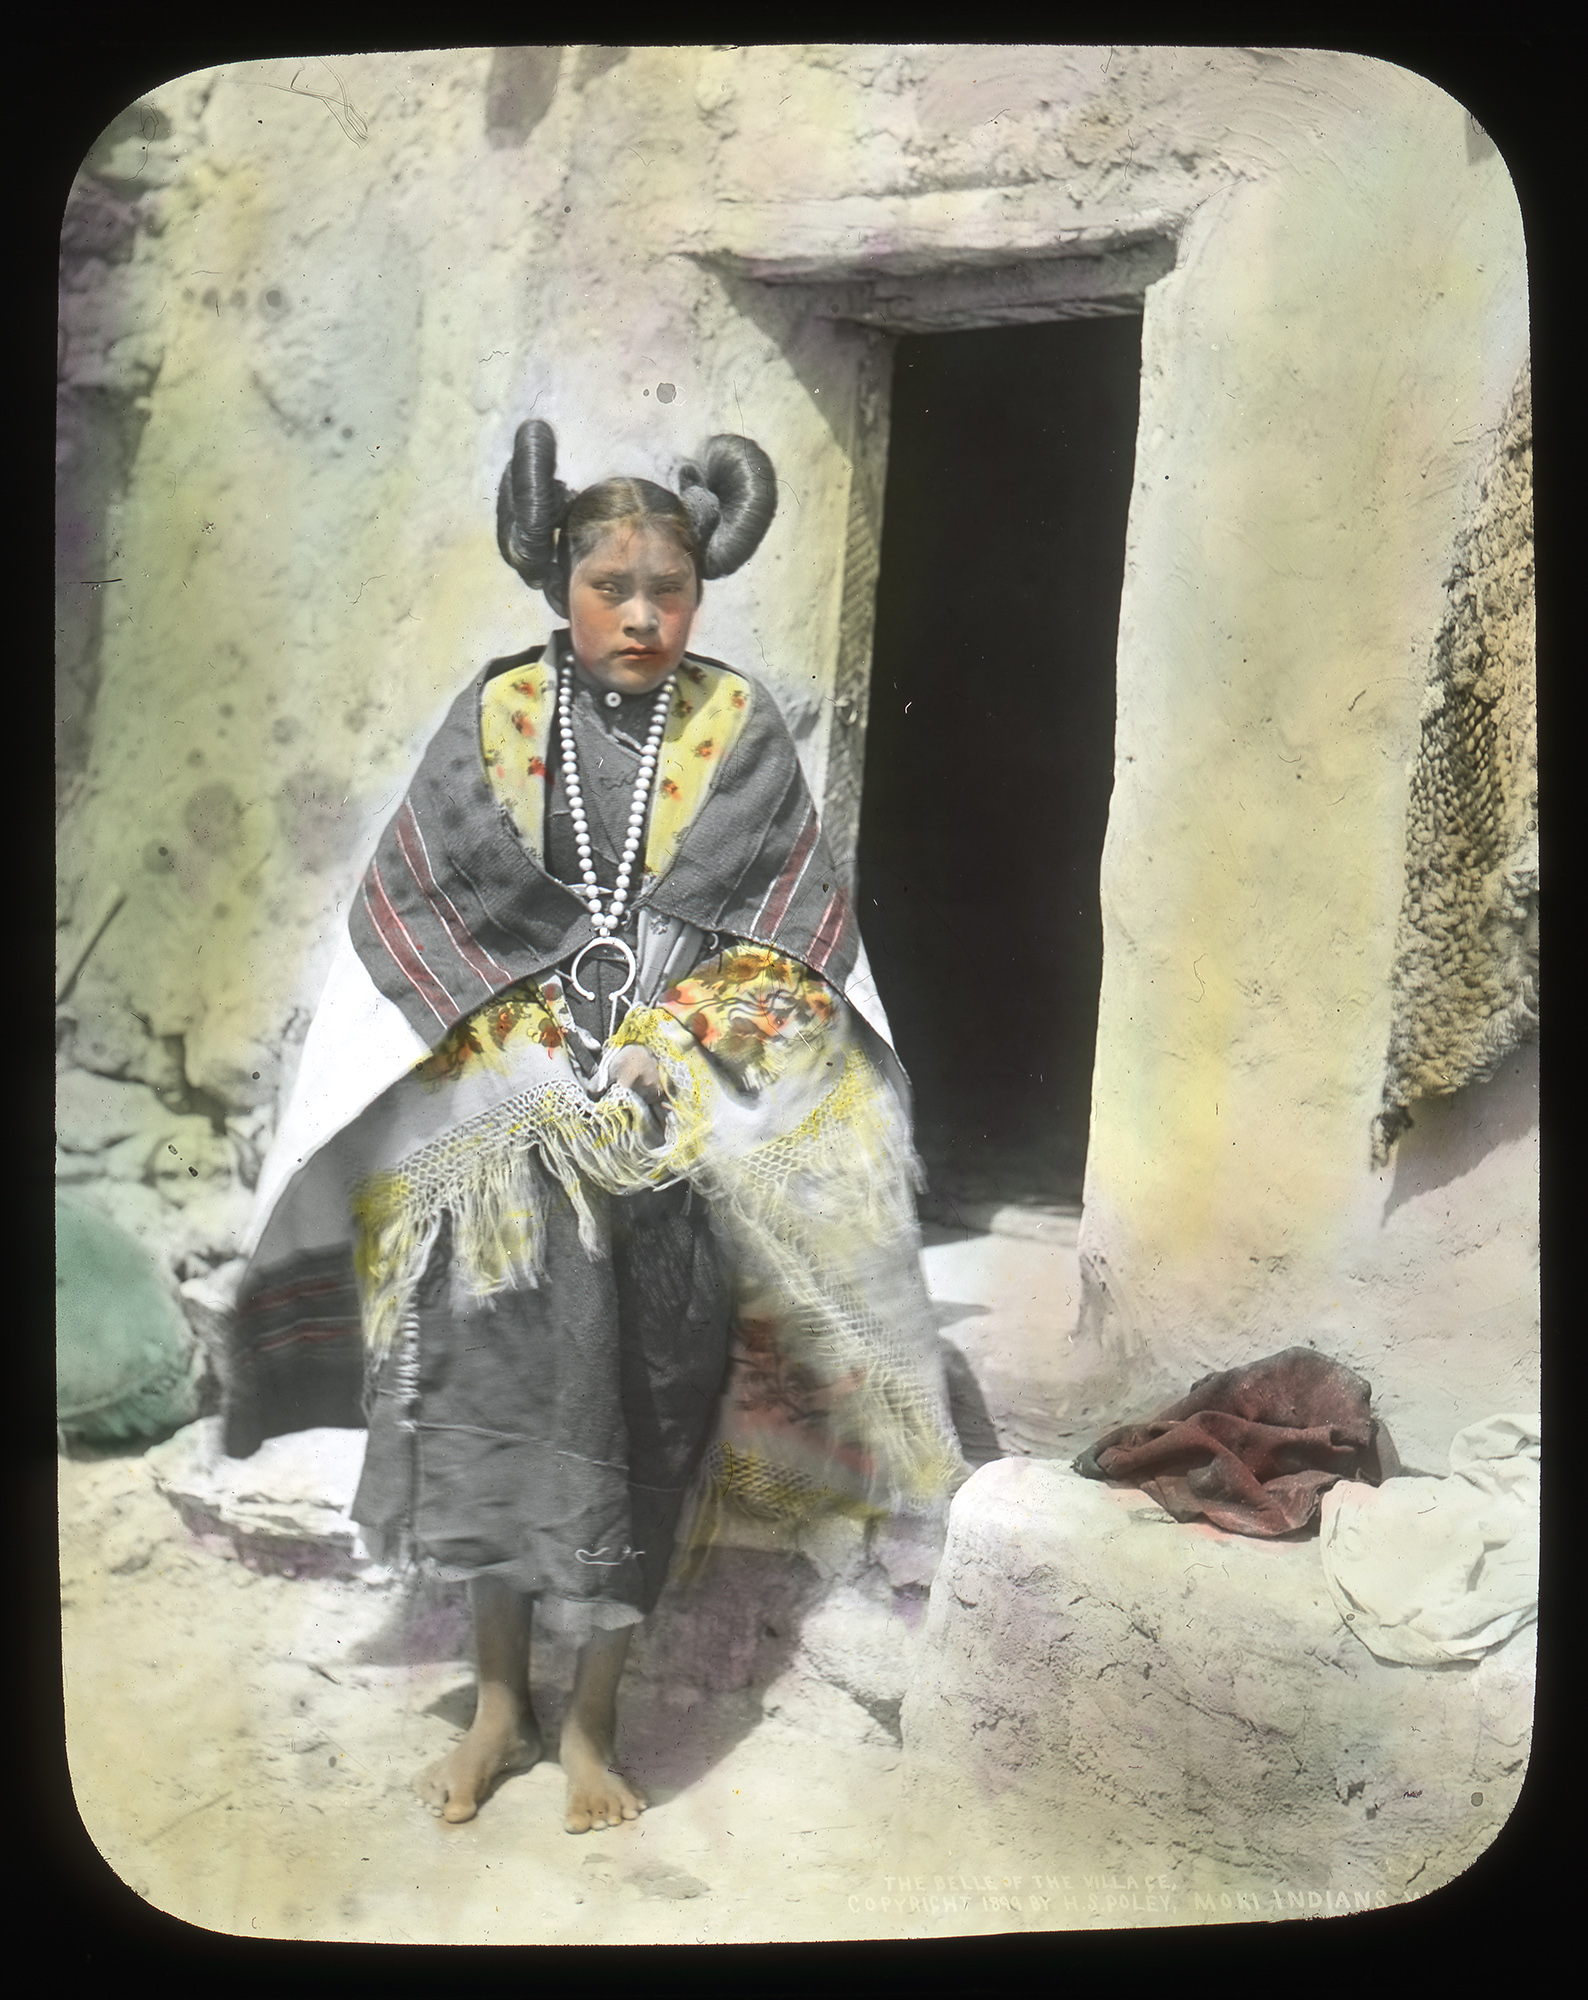 A lantern slide of a Hopi girl in traditional dress.